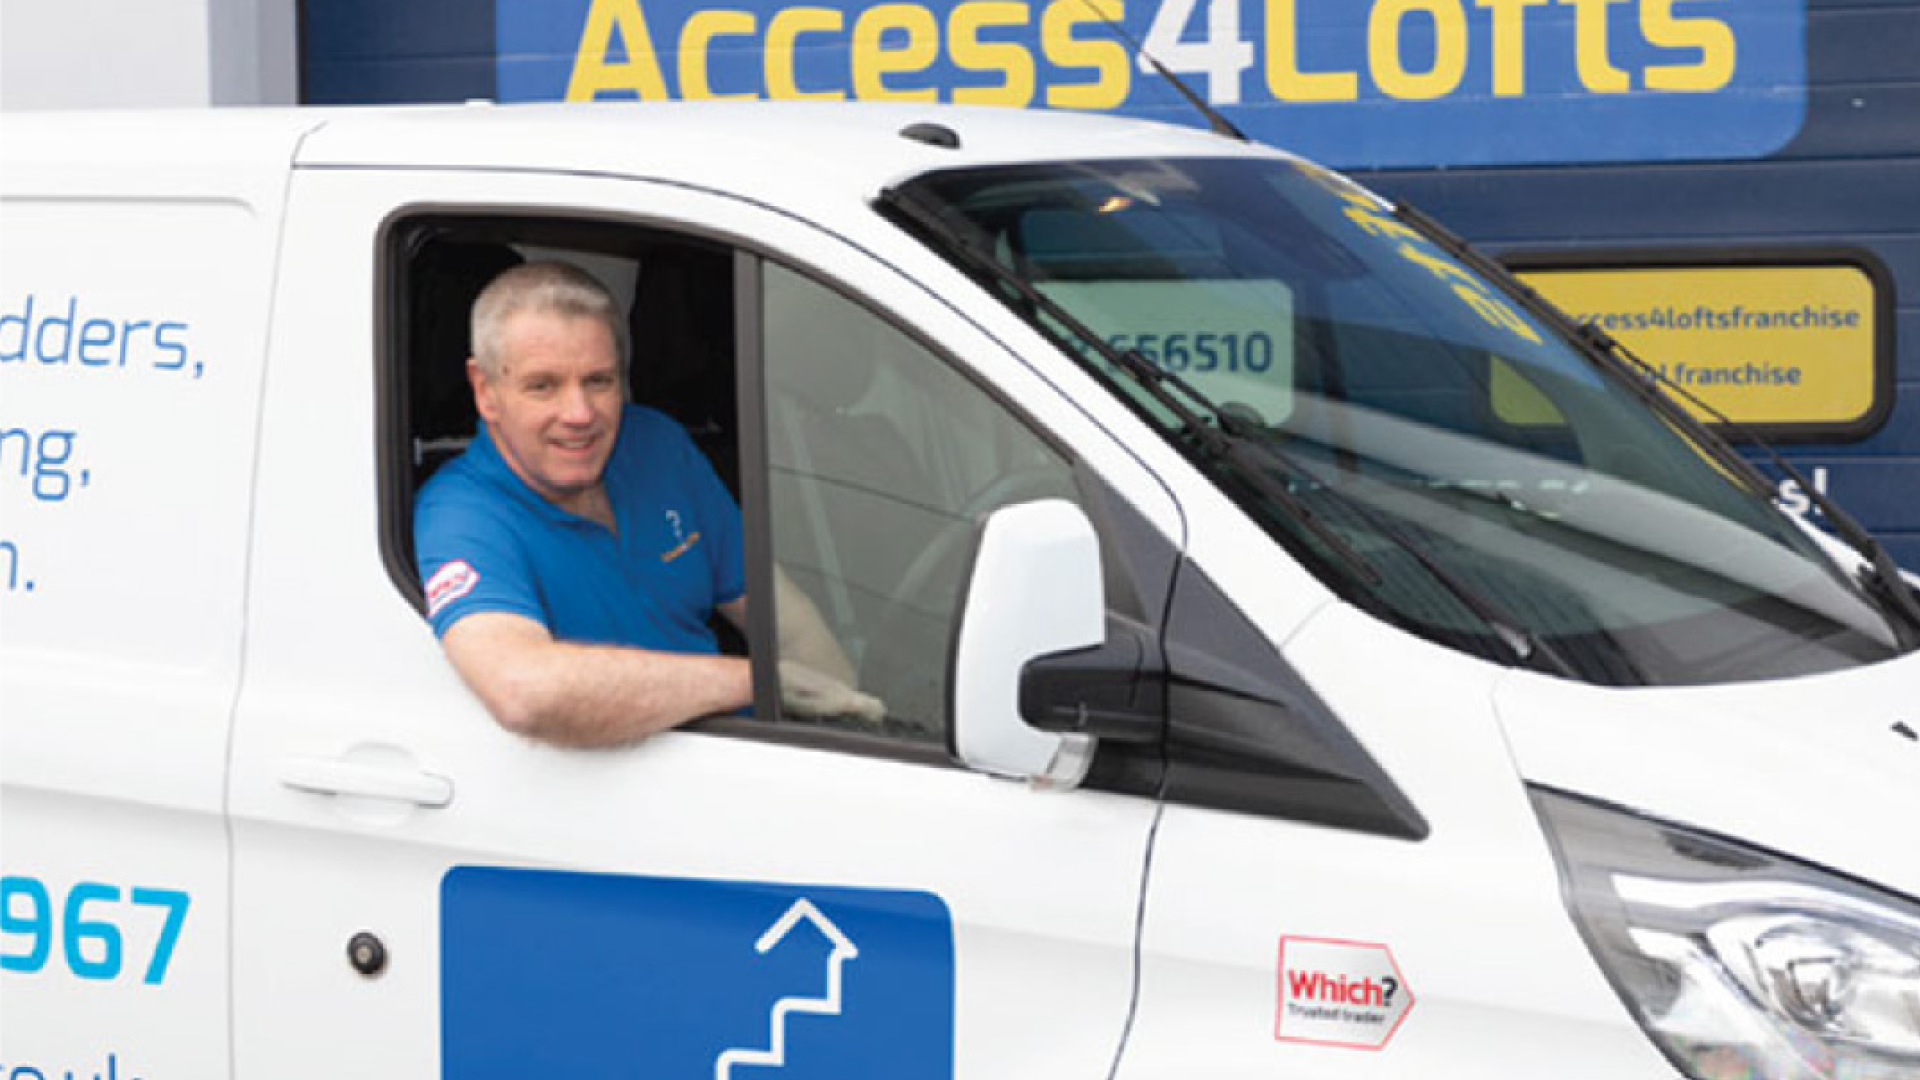 Hear from Billy Makepeace and his journey in to franchising with Access4Lofts